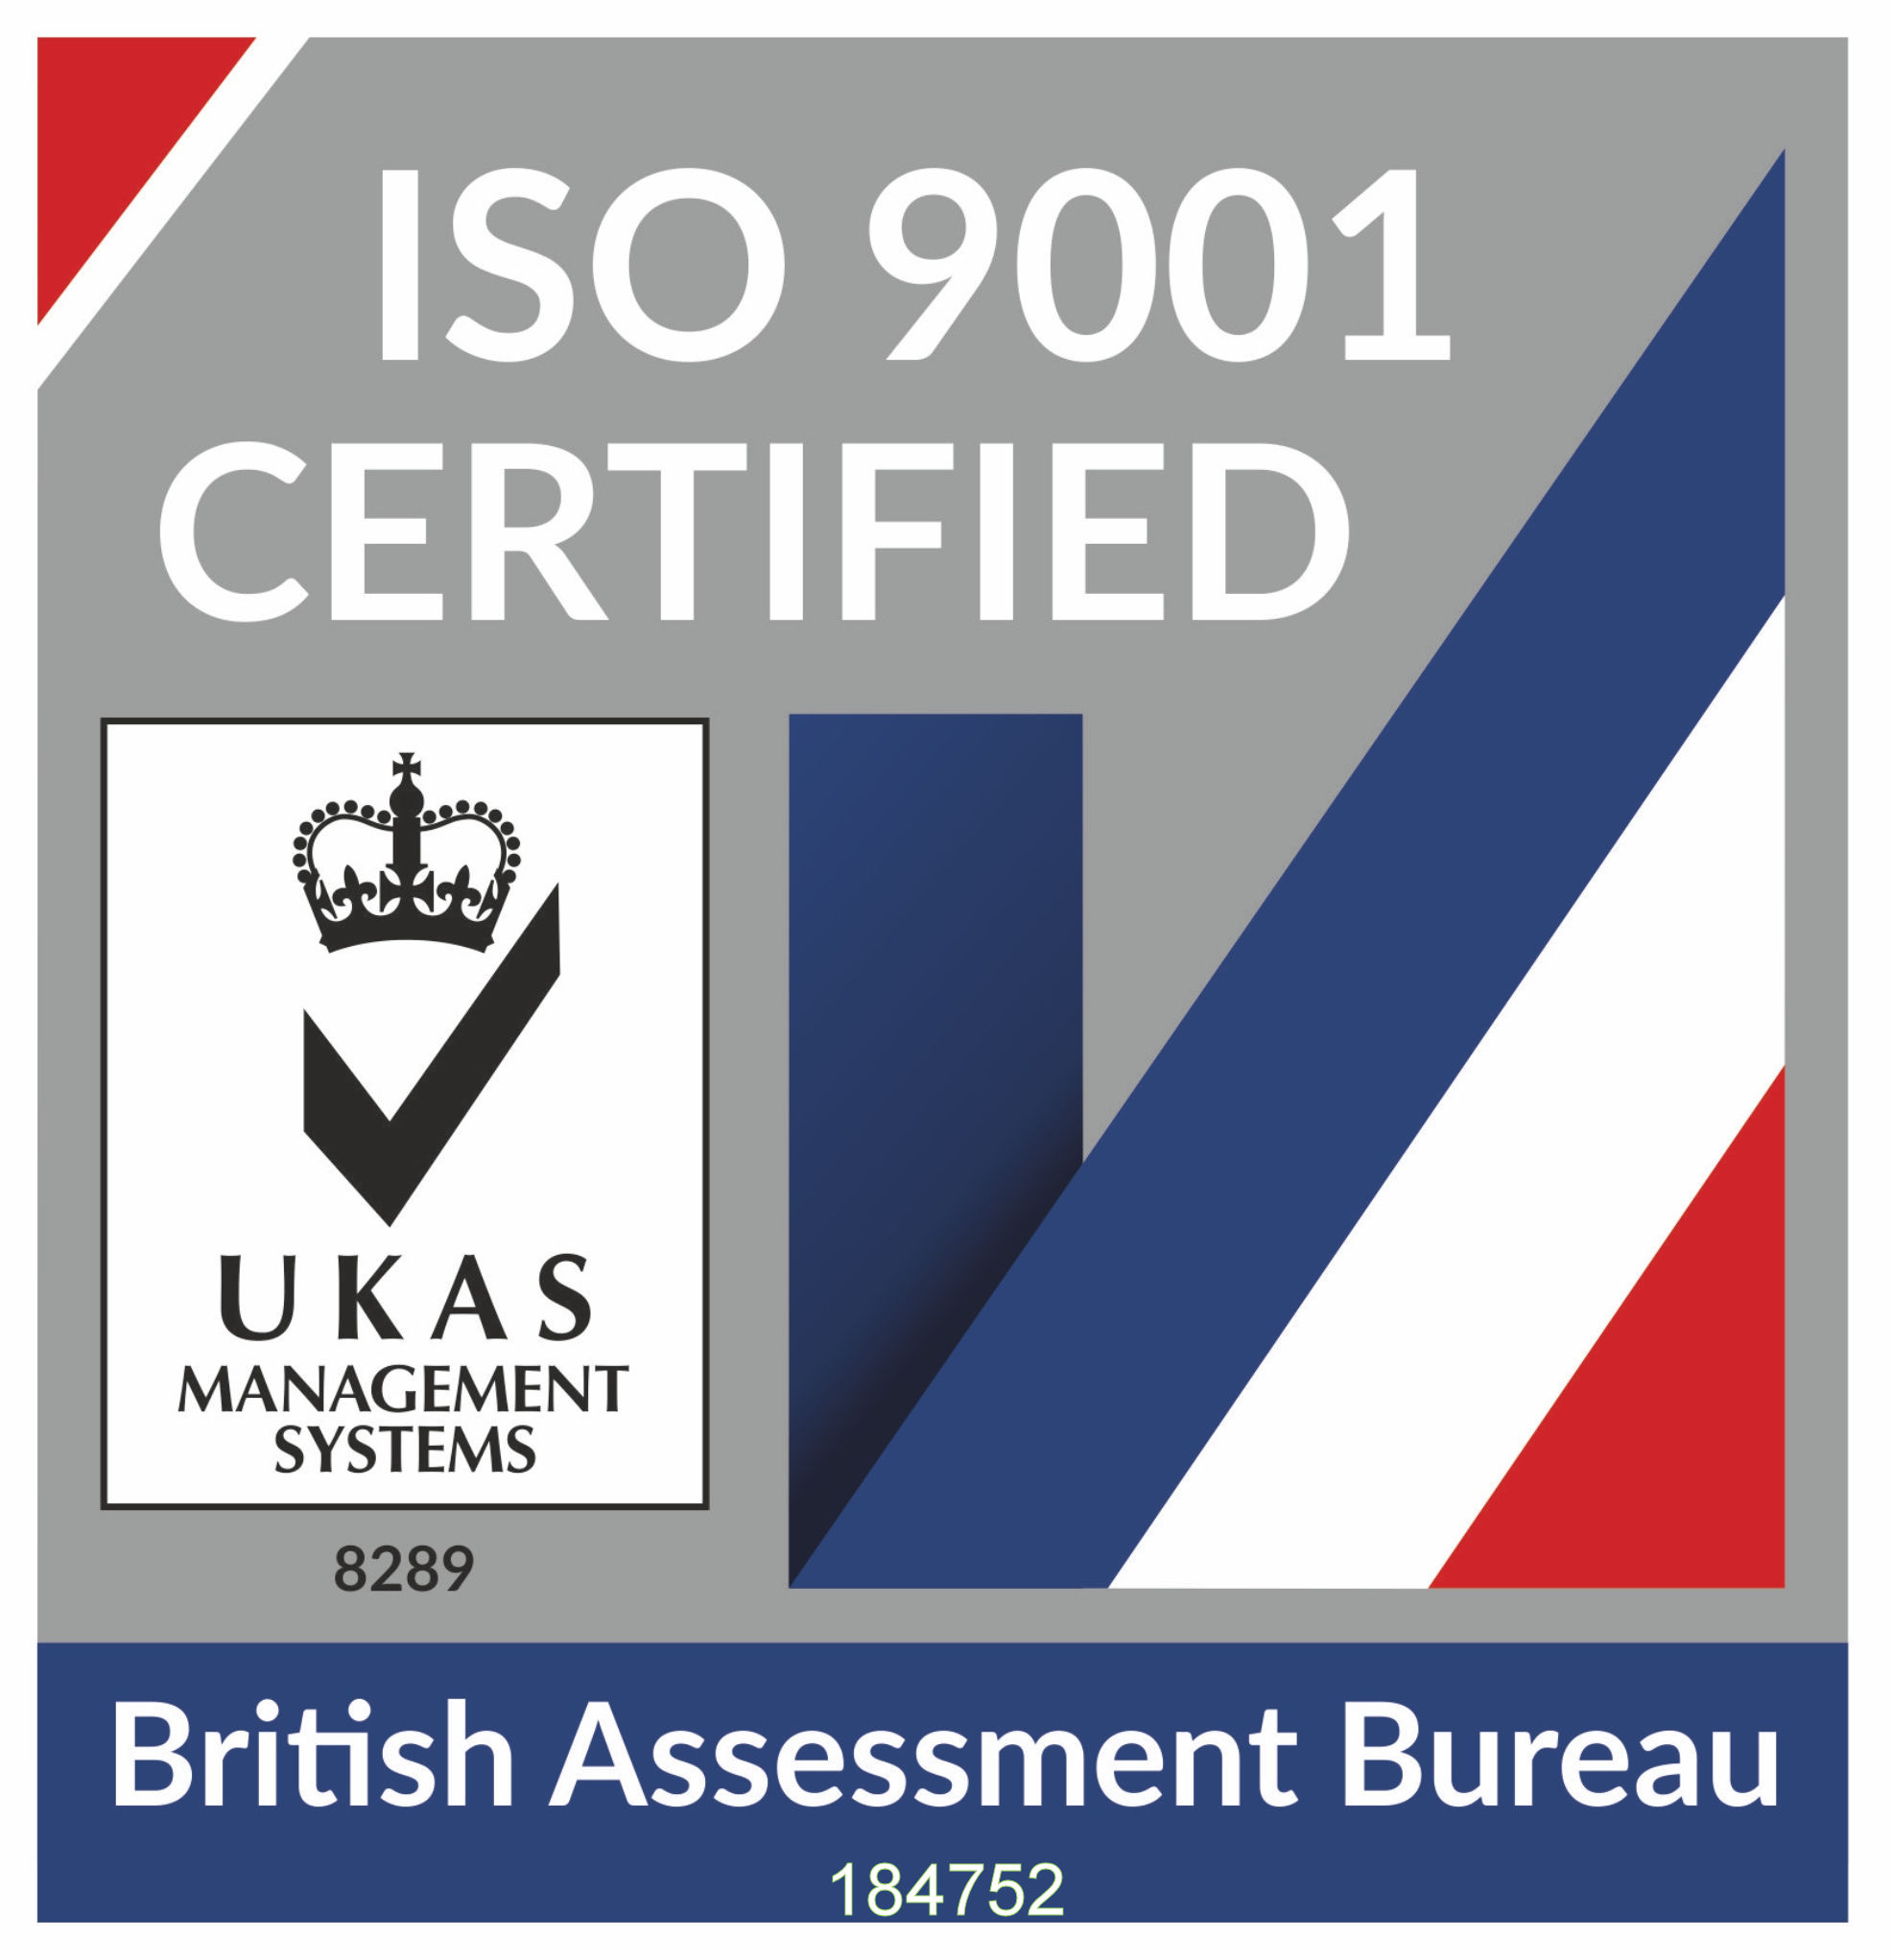 ISO 9001 Certified 8289_184752